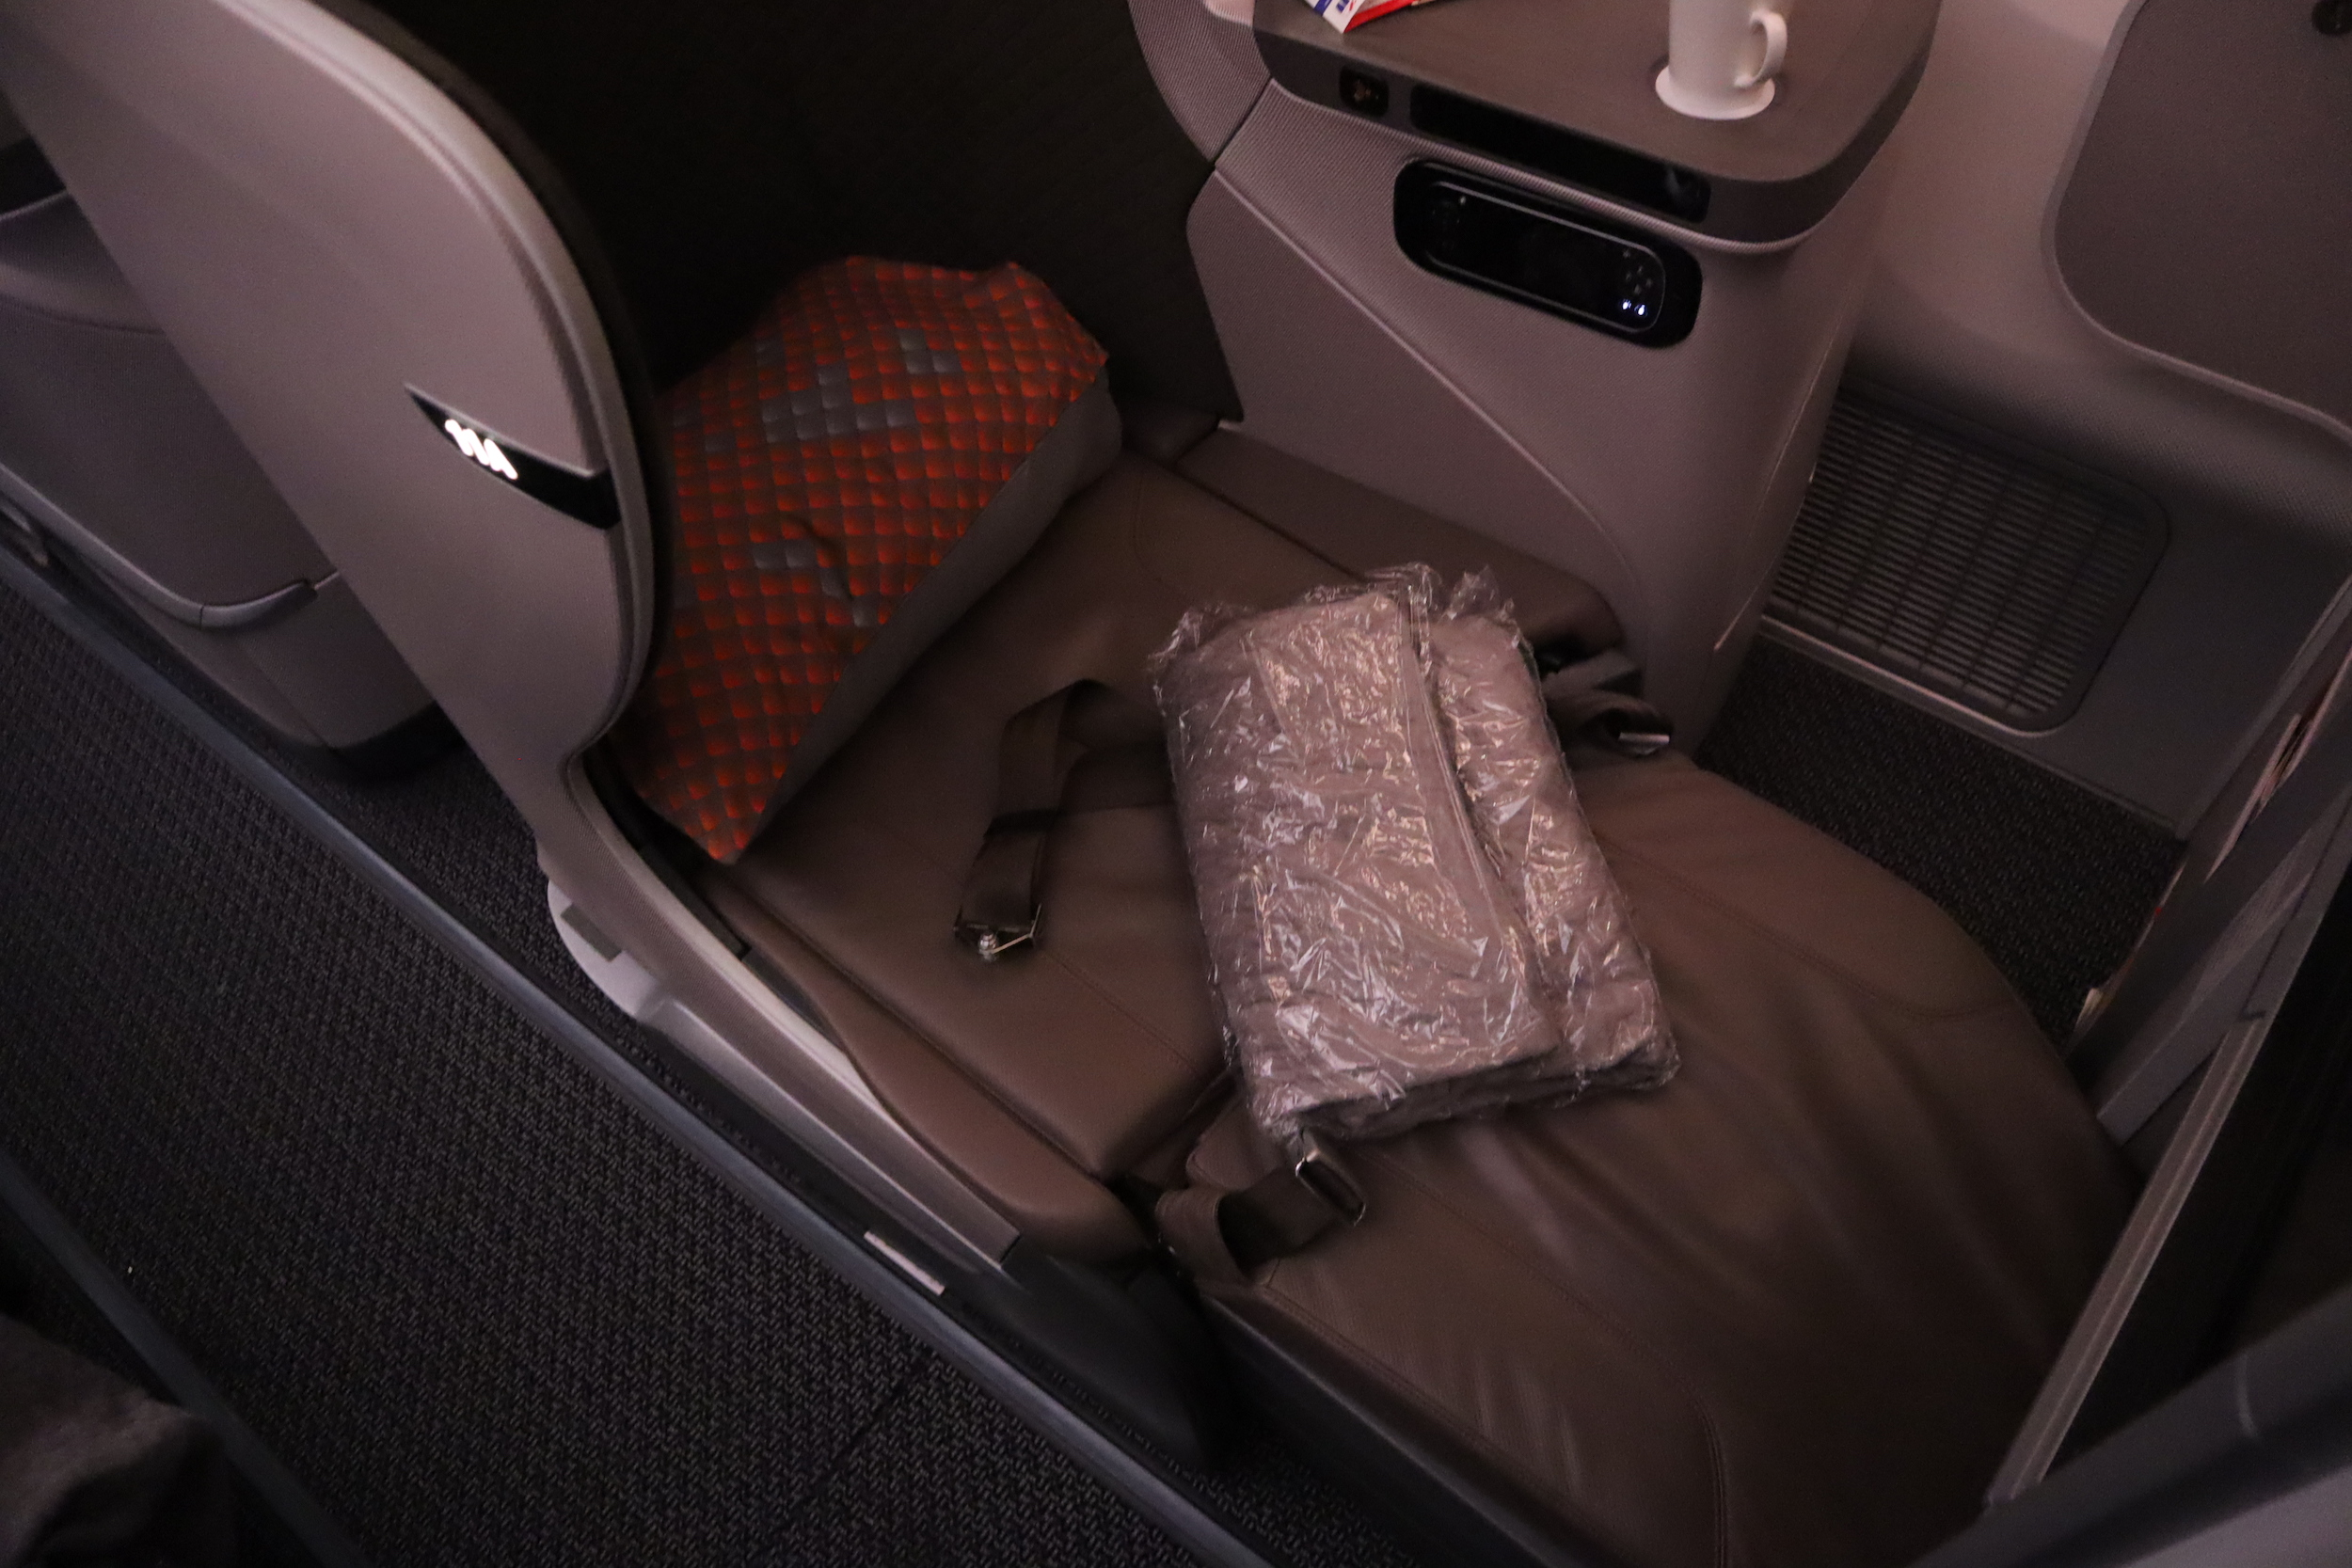 Singapore Airlines 787-10 business class – Bed